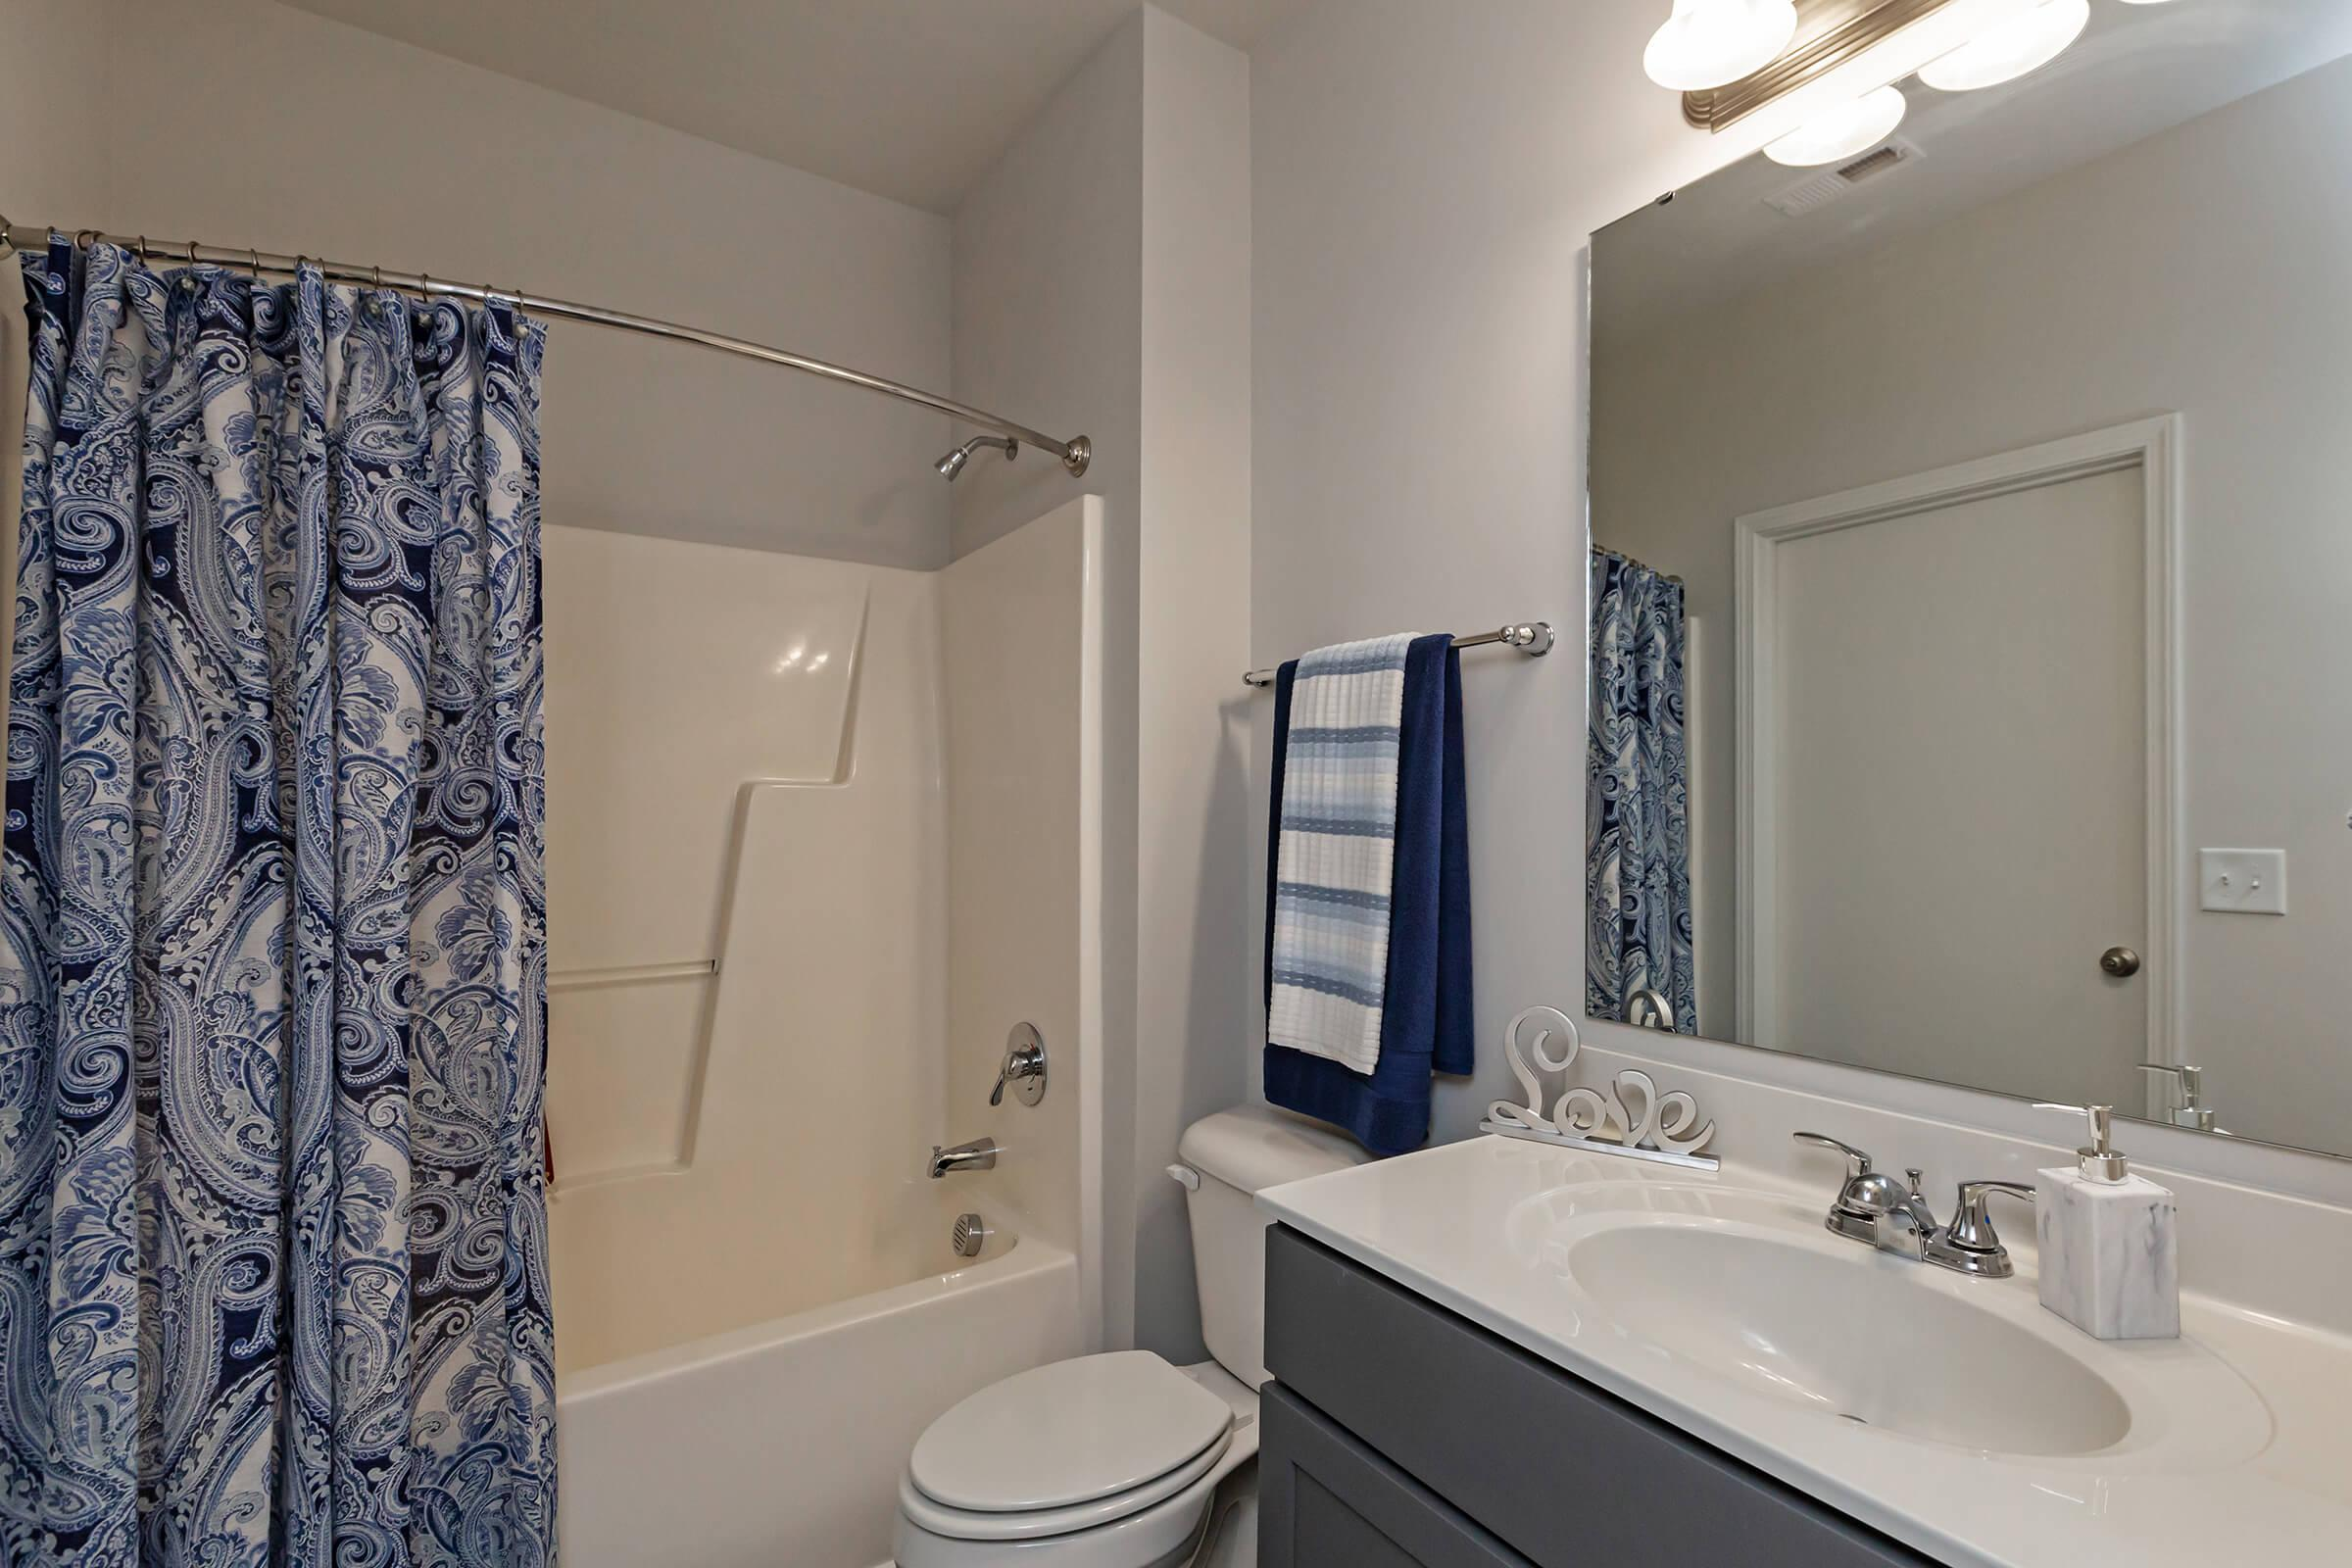 Beautifully Designed Bathroom At New Providence Park In Wilmington, NC